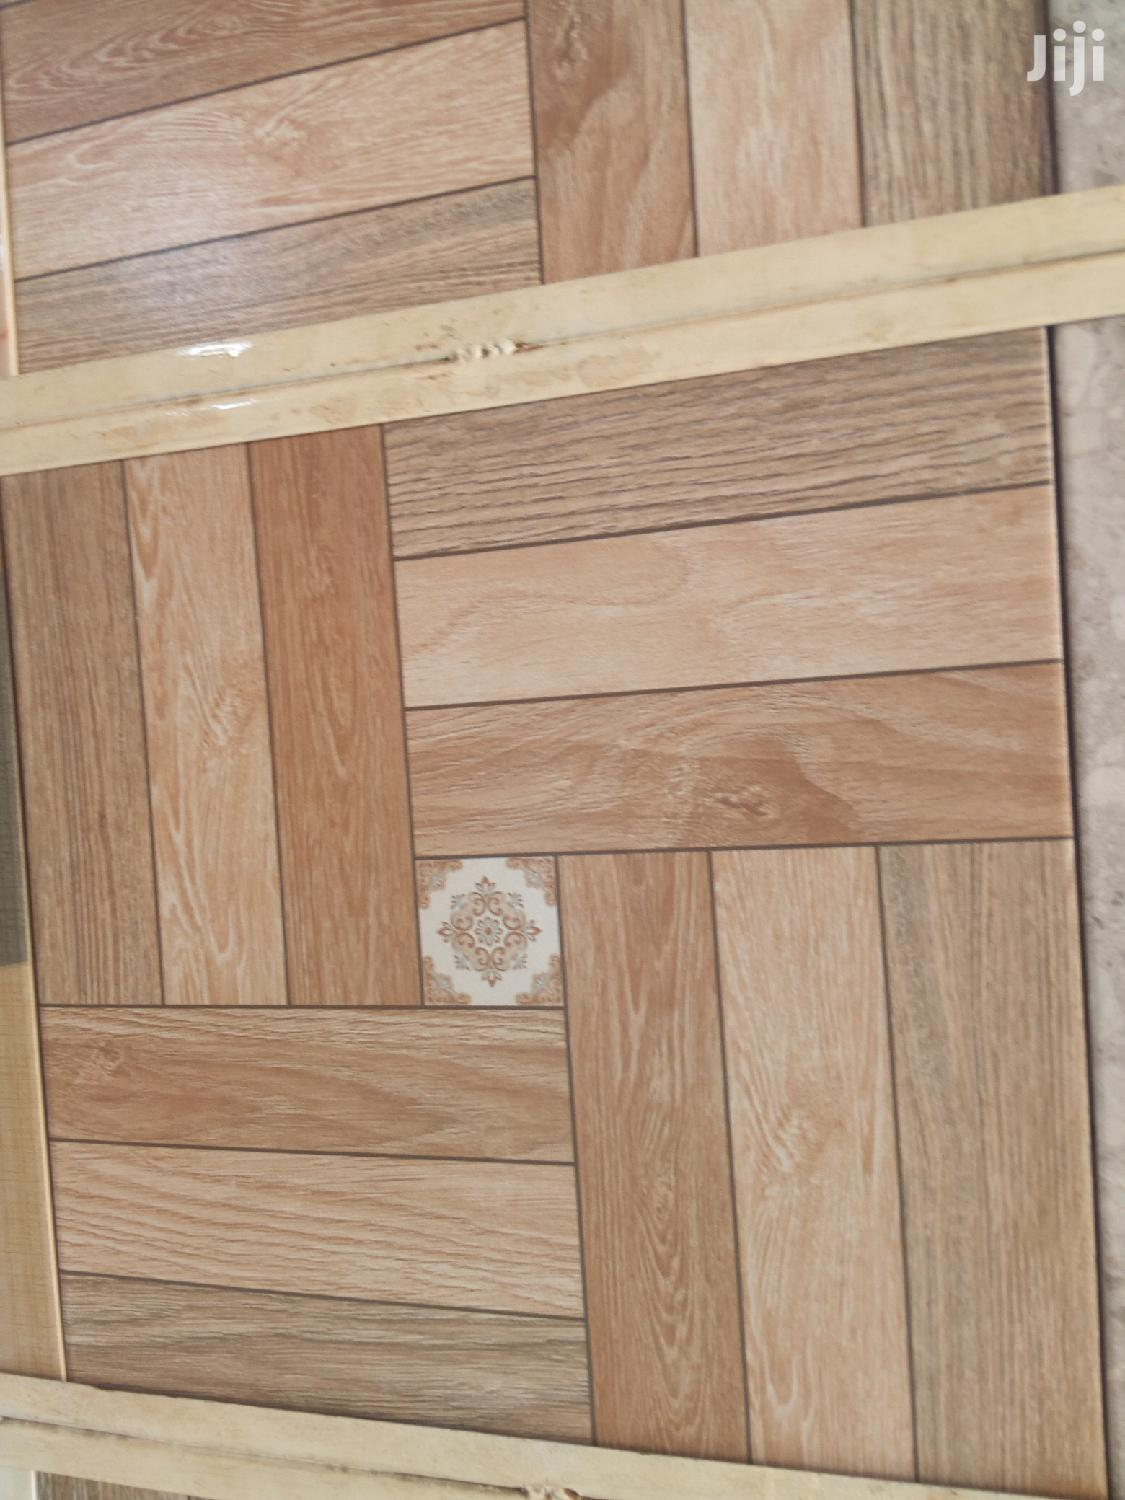 Floor and Wall Tiles | Building Materials for sale in Accra Metropolitan, Greater Accra, Ghana